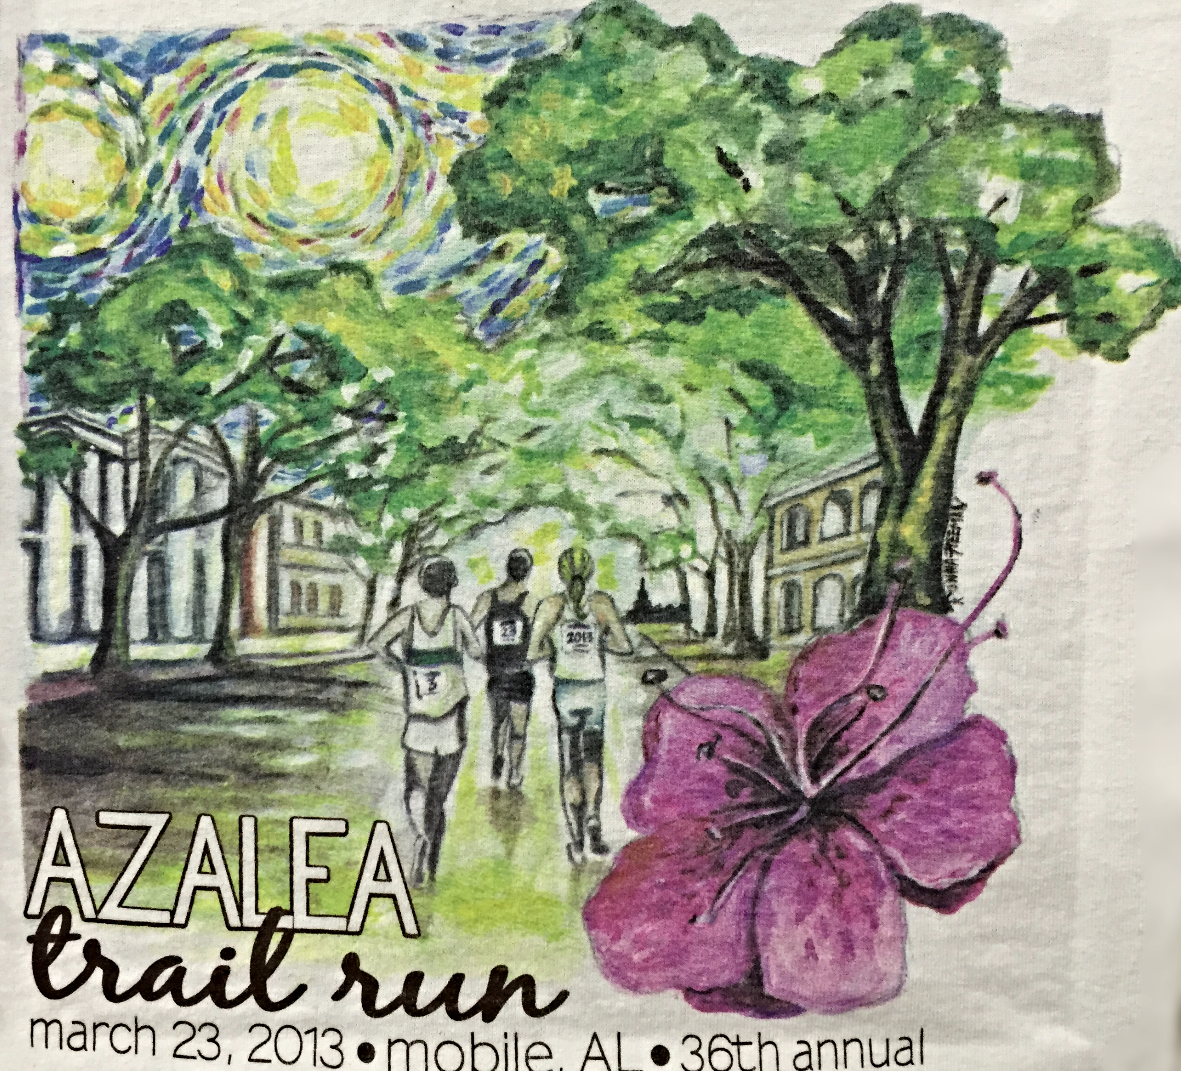 Mobile Azalea Trail Run